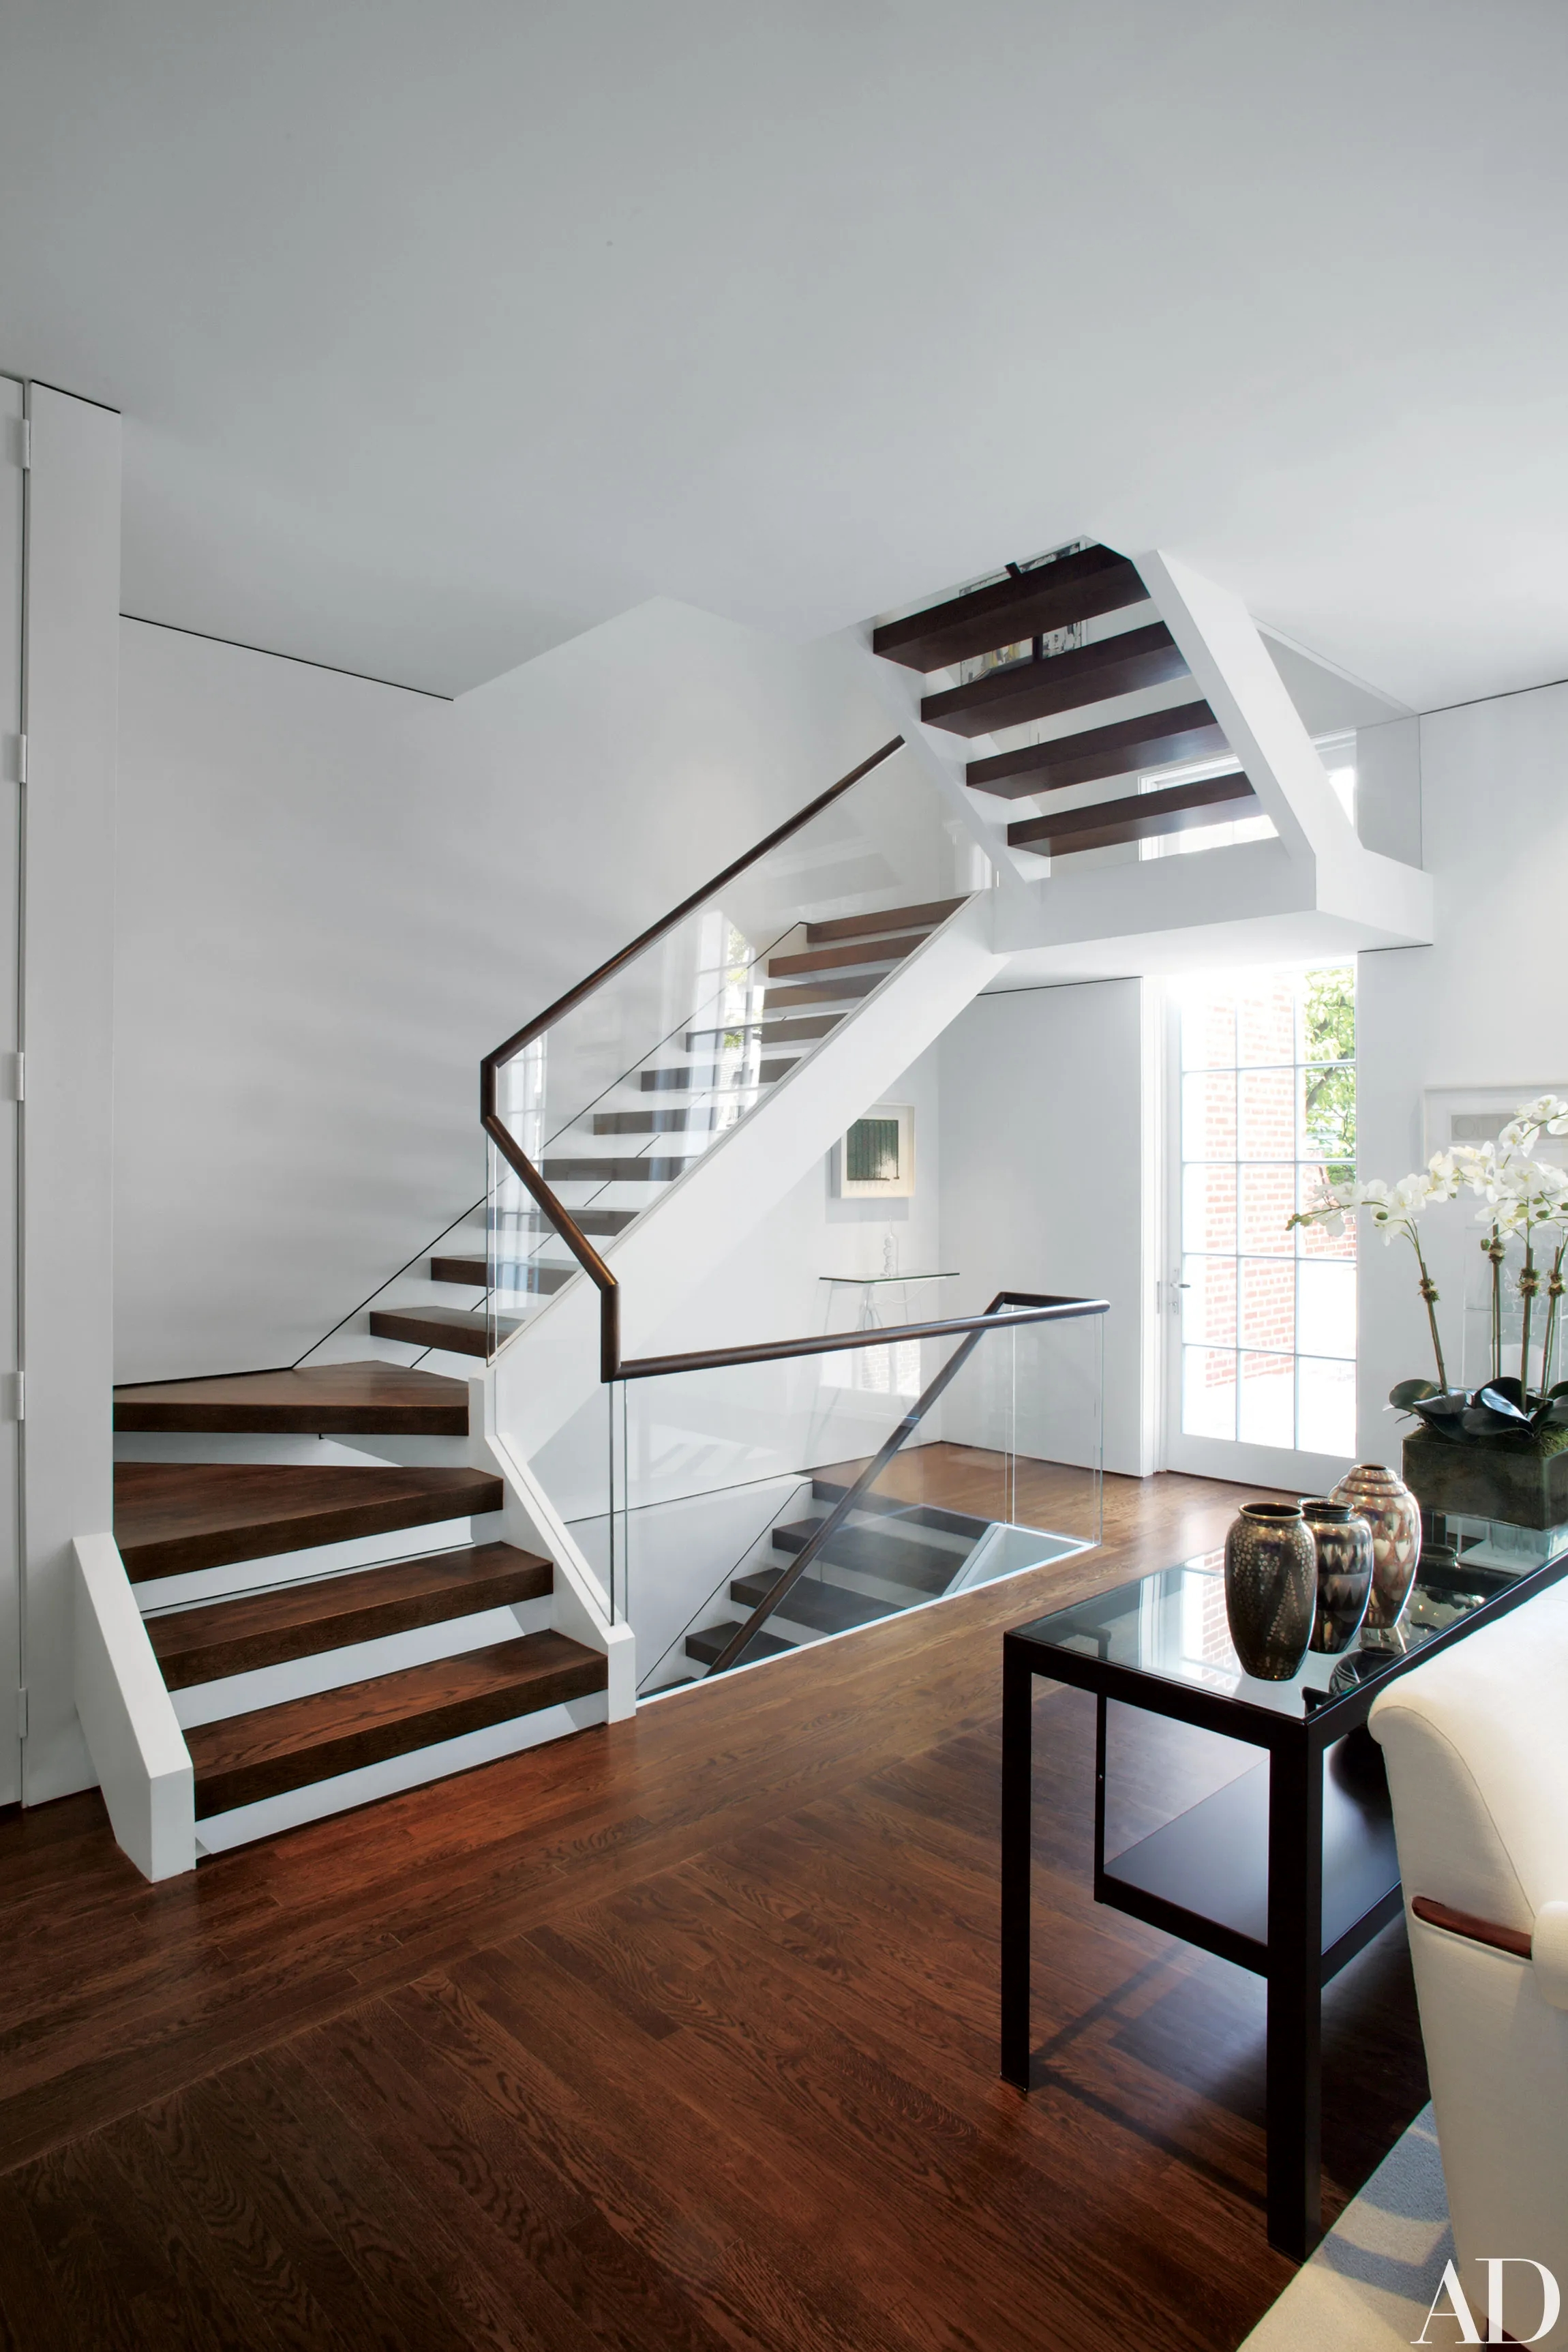 15 Striking Modern Staircases Architectural Digest   House Inner Steps Design   Staircase Window   Bungalow   House Plan   Duplex Shop   Limited Space Small Stair